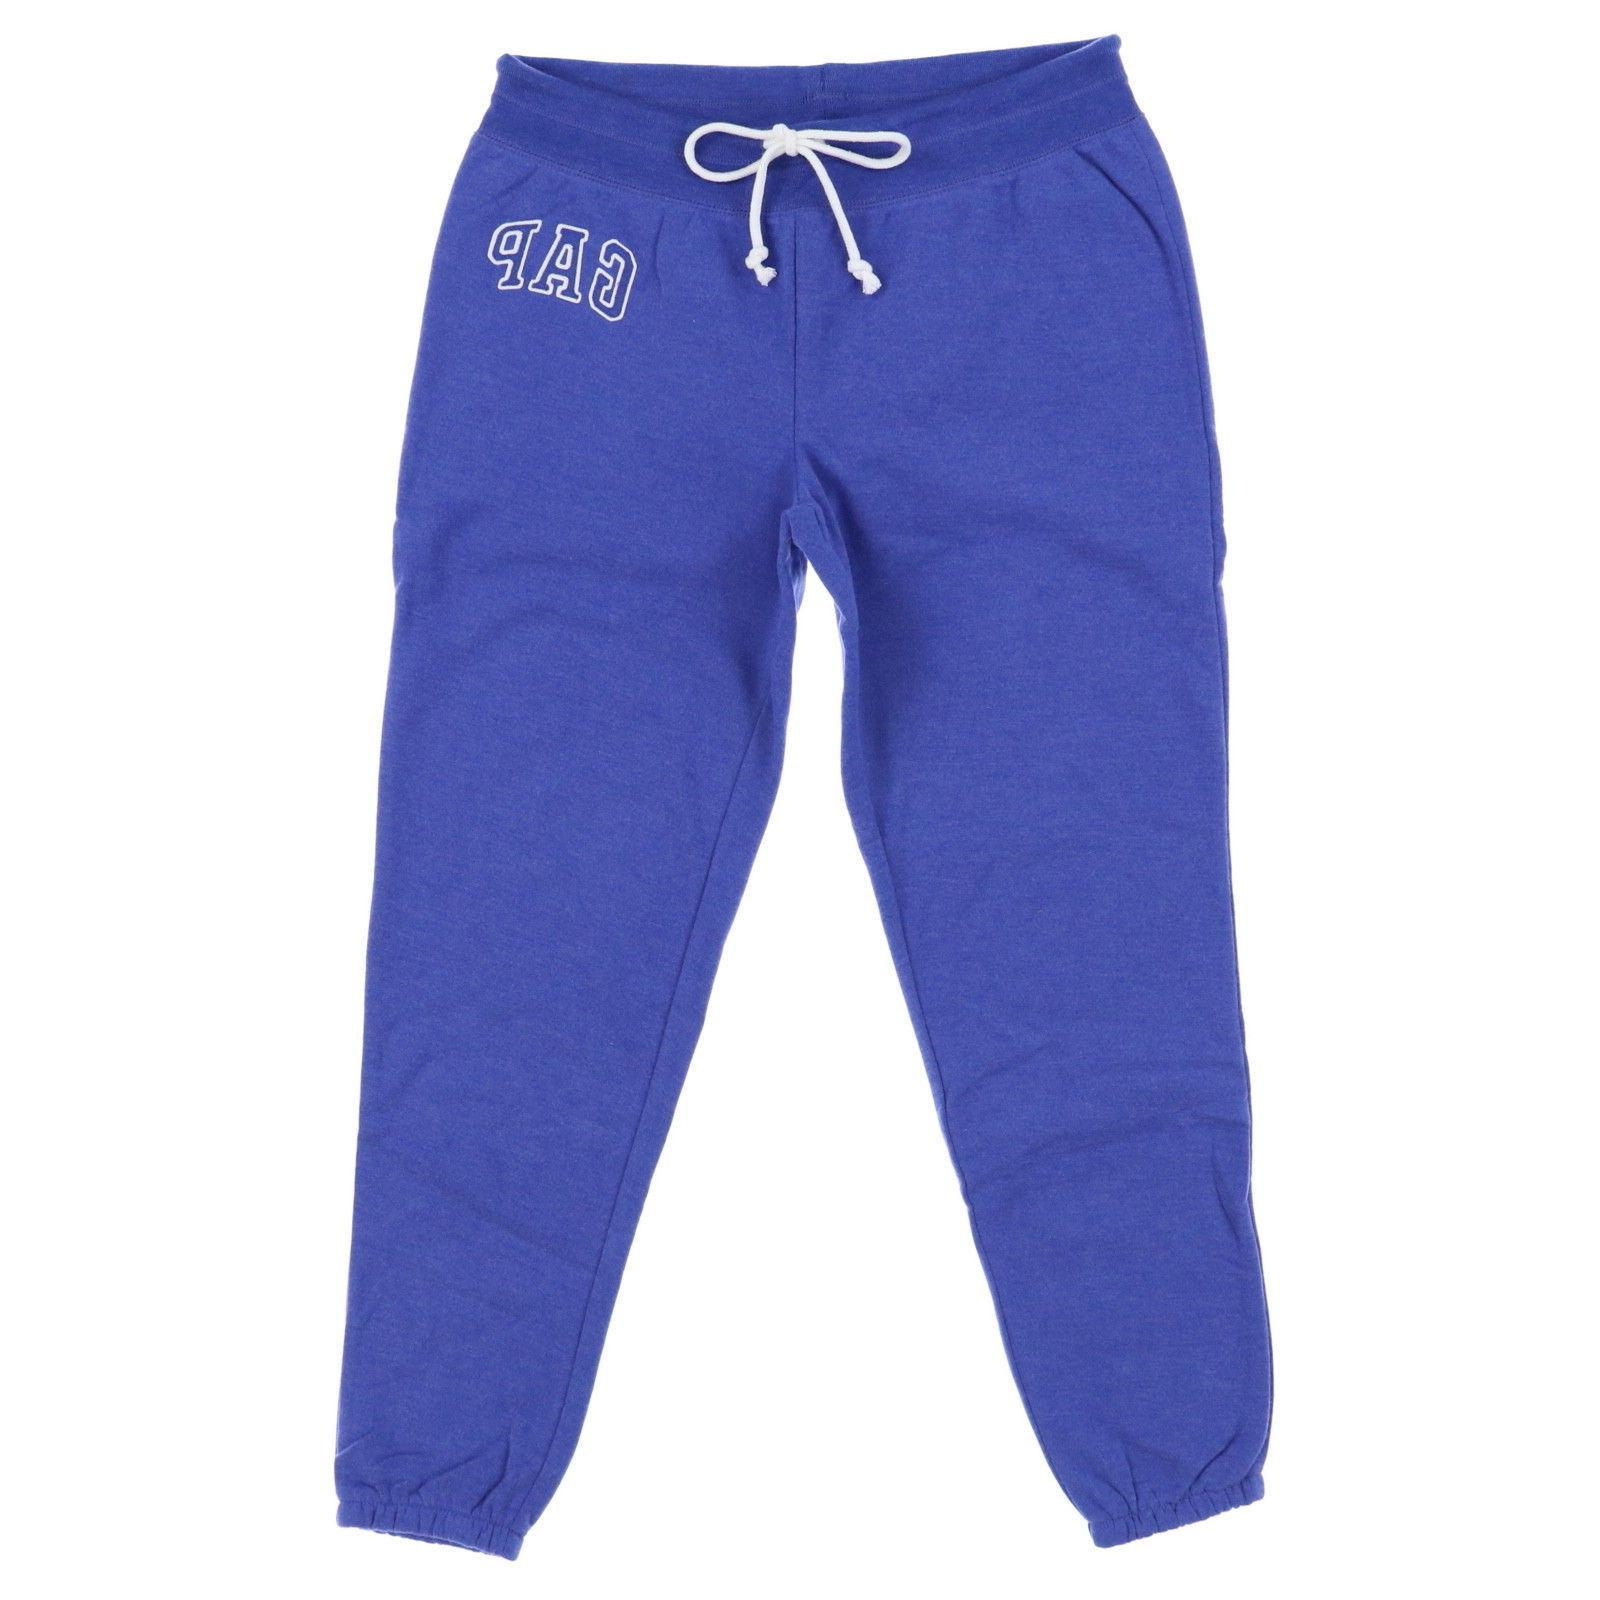 Gap Womens Lined Sleep Joggers Stretch